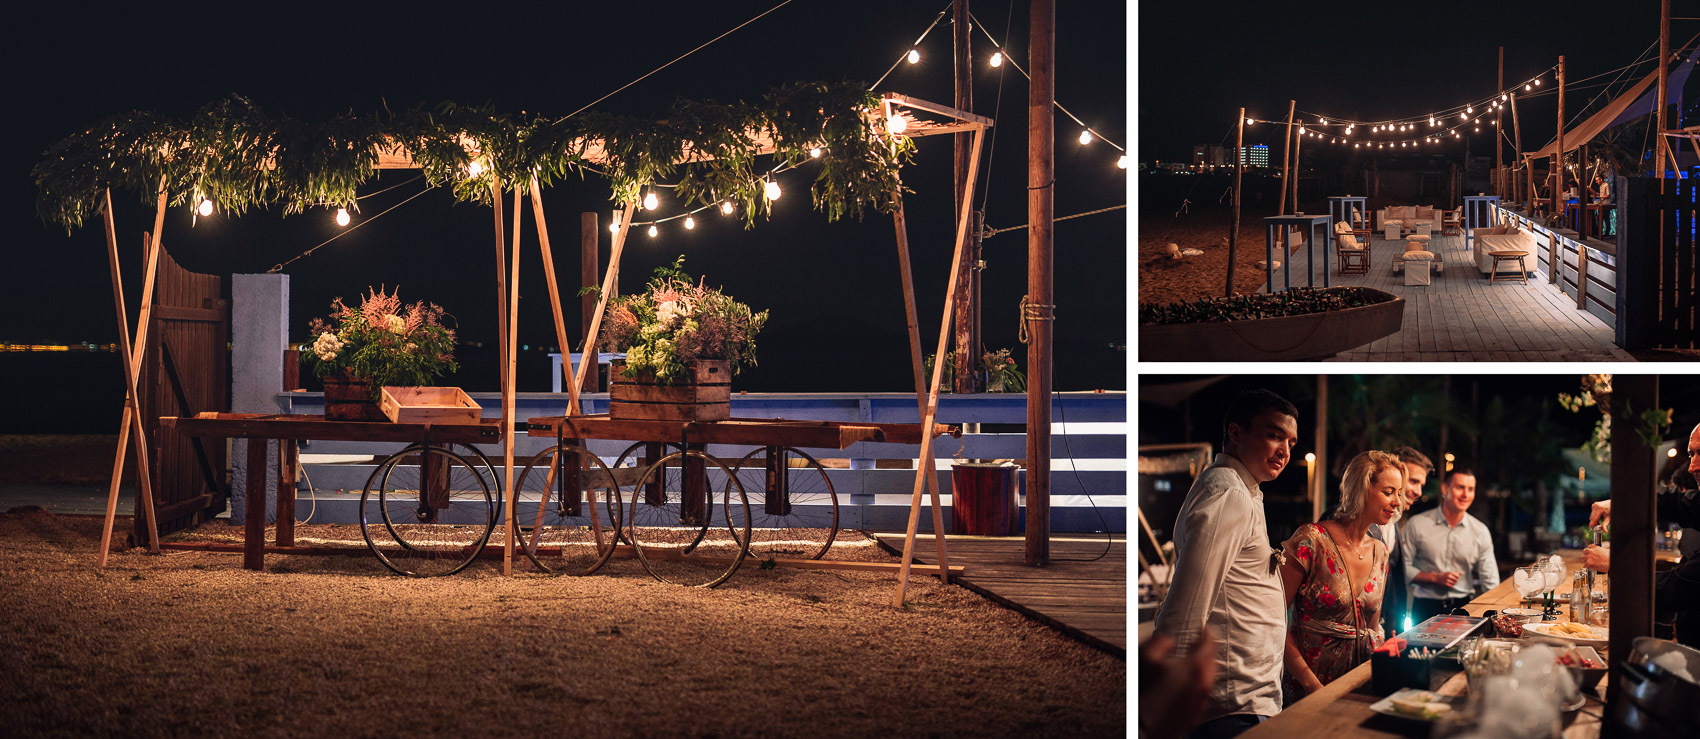 decoracion boda valisse detalles invitados luces beach